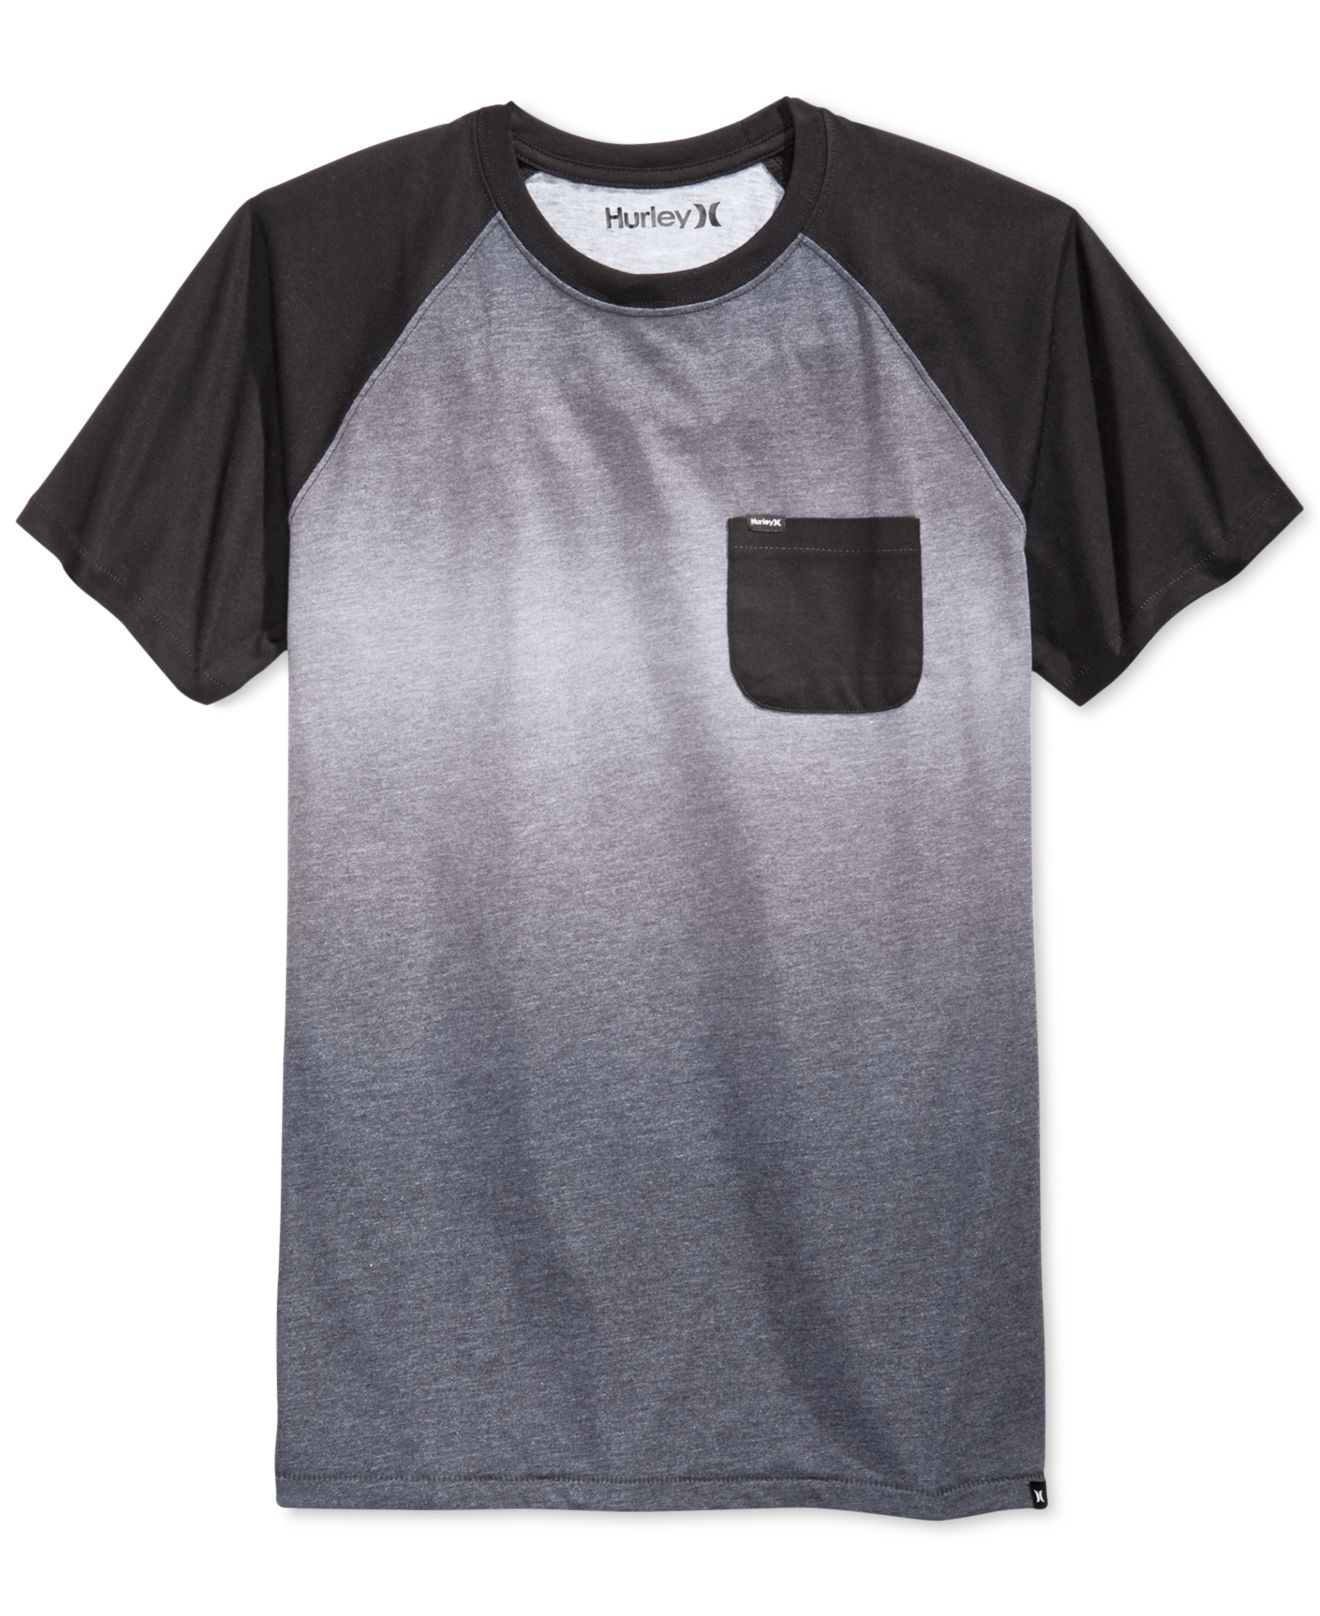 Hurley collective fade crew t shirt in black for men lyst for Faded color t shirts